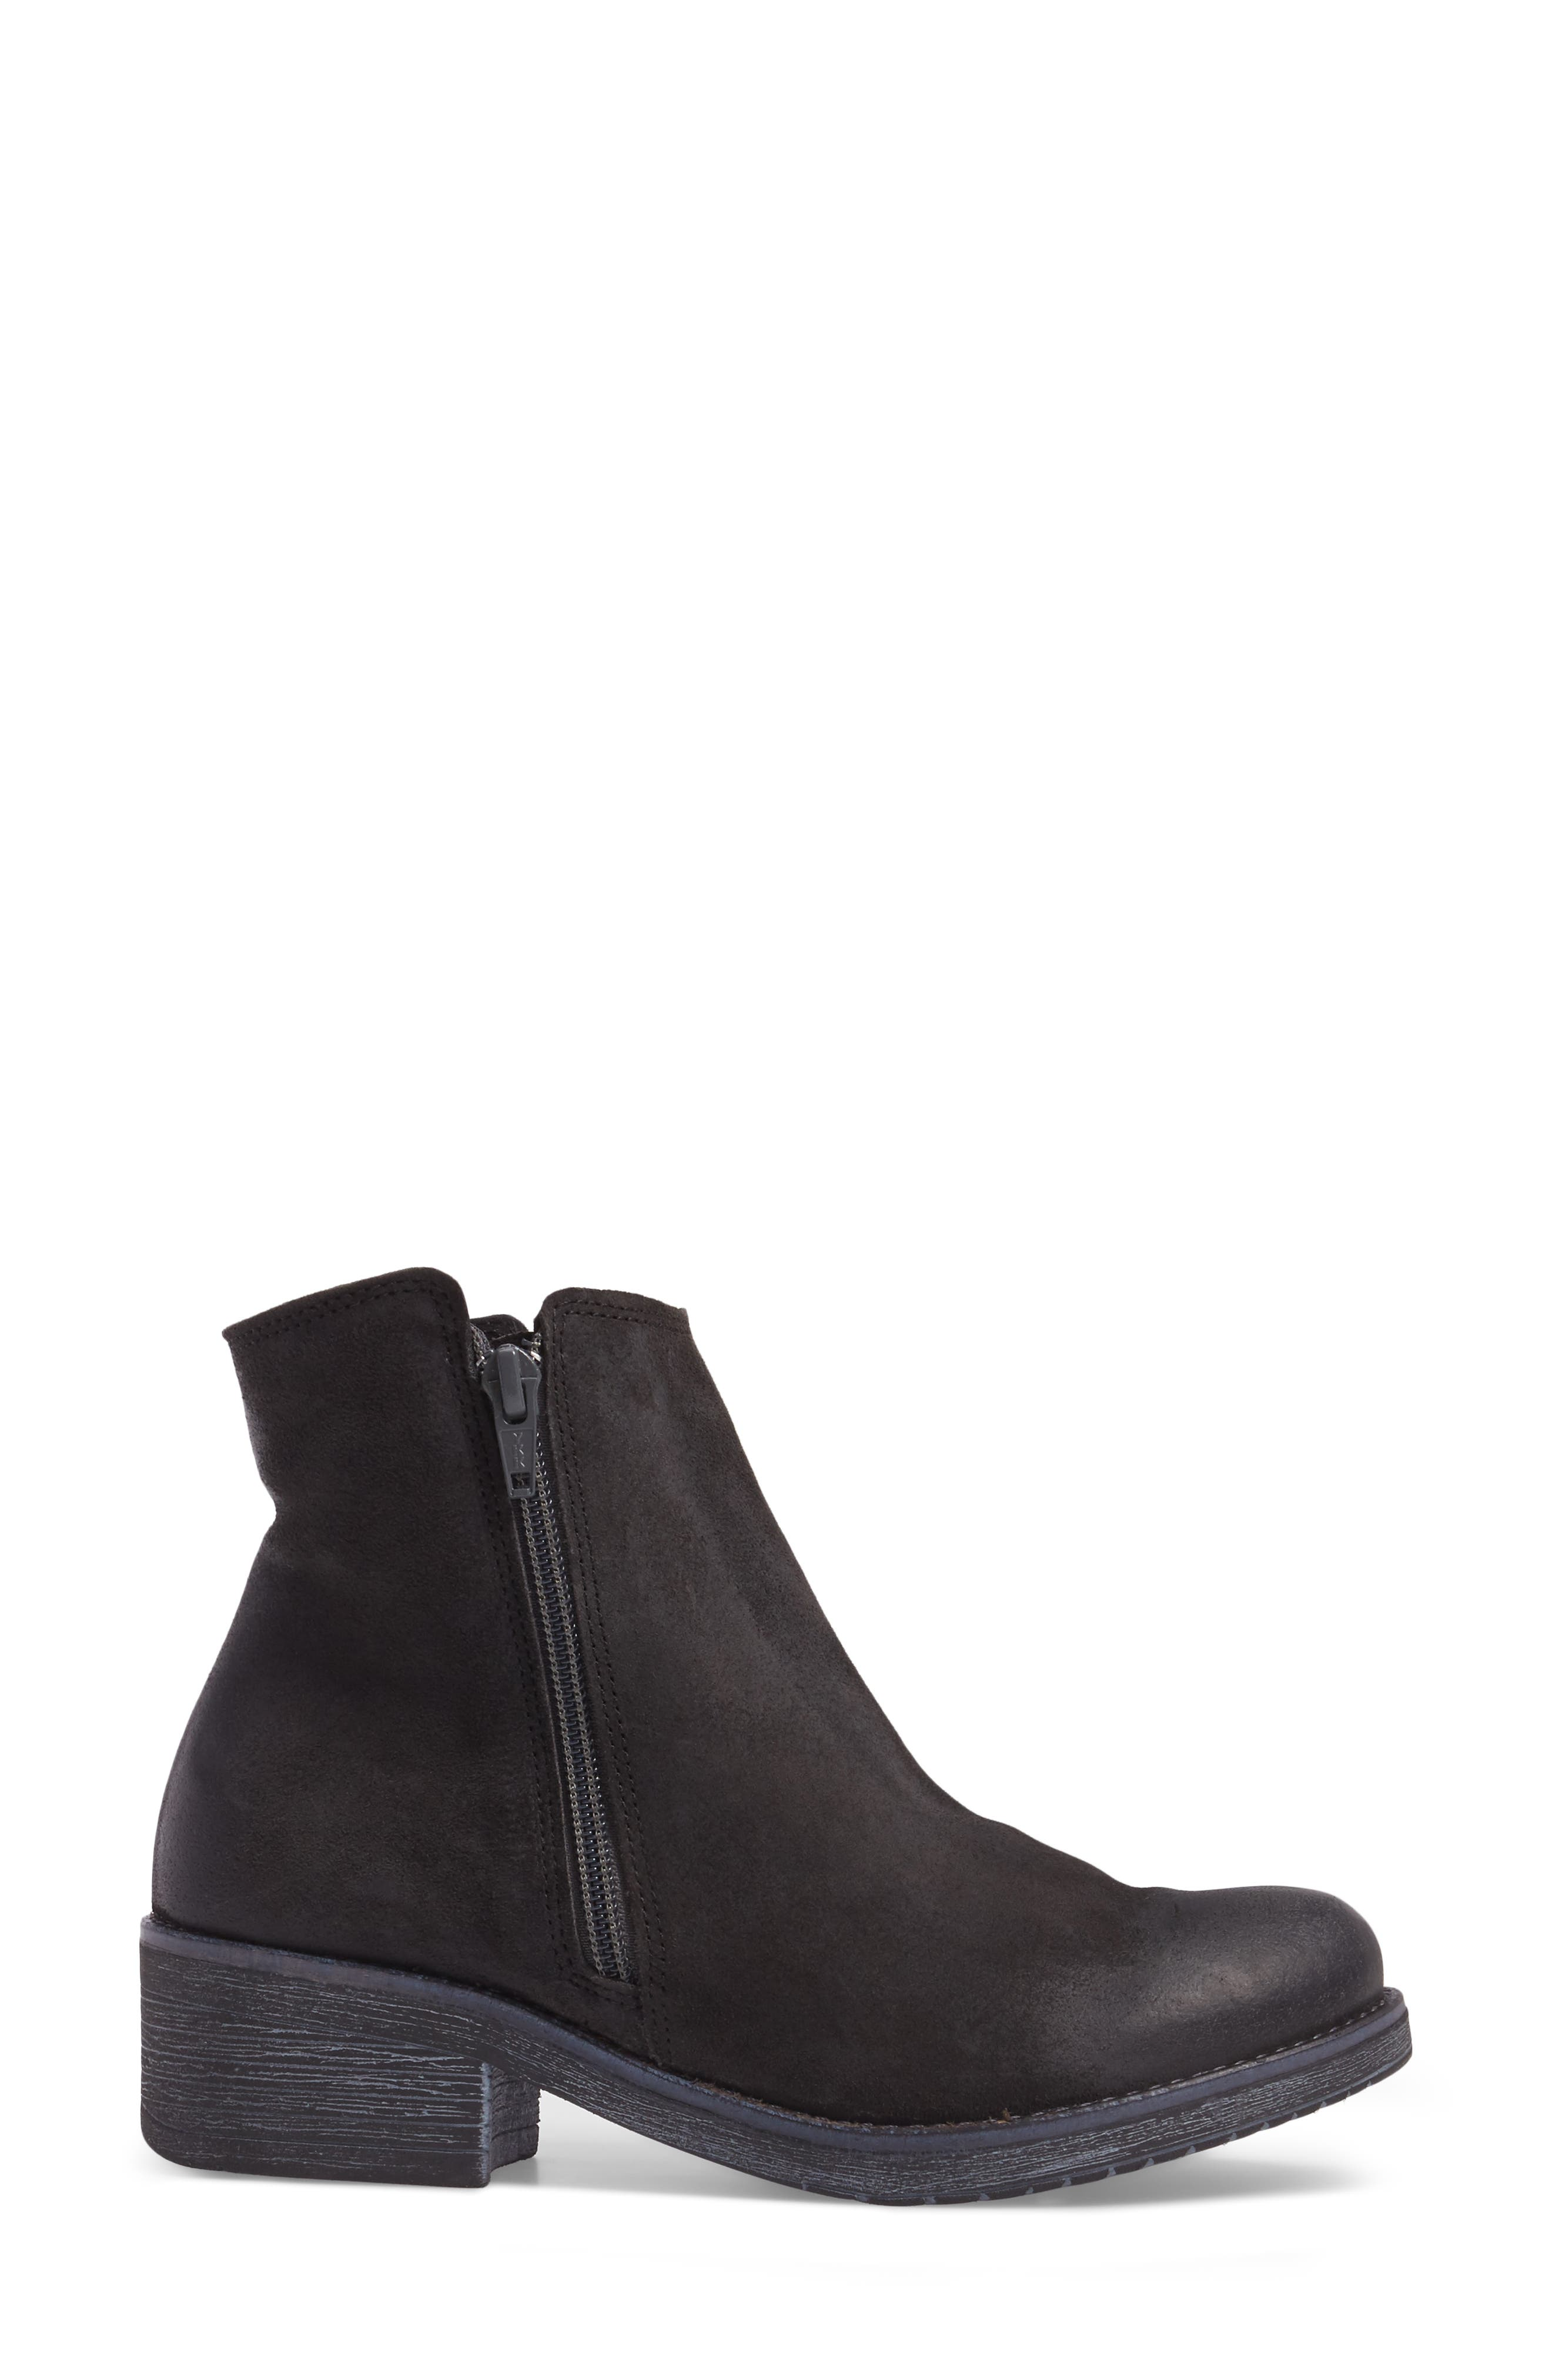 Wander Boot,                             Alternate thumbnail 3, color,                             OILY MIDNIGHT SUEDE